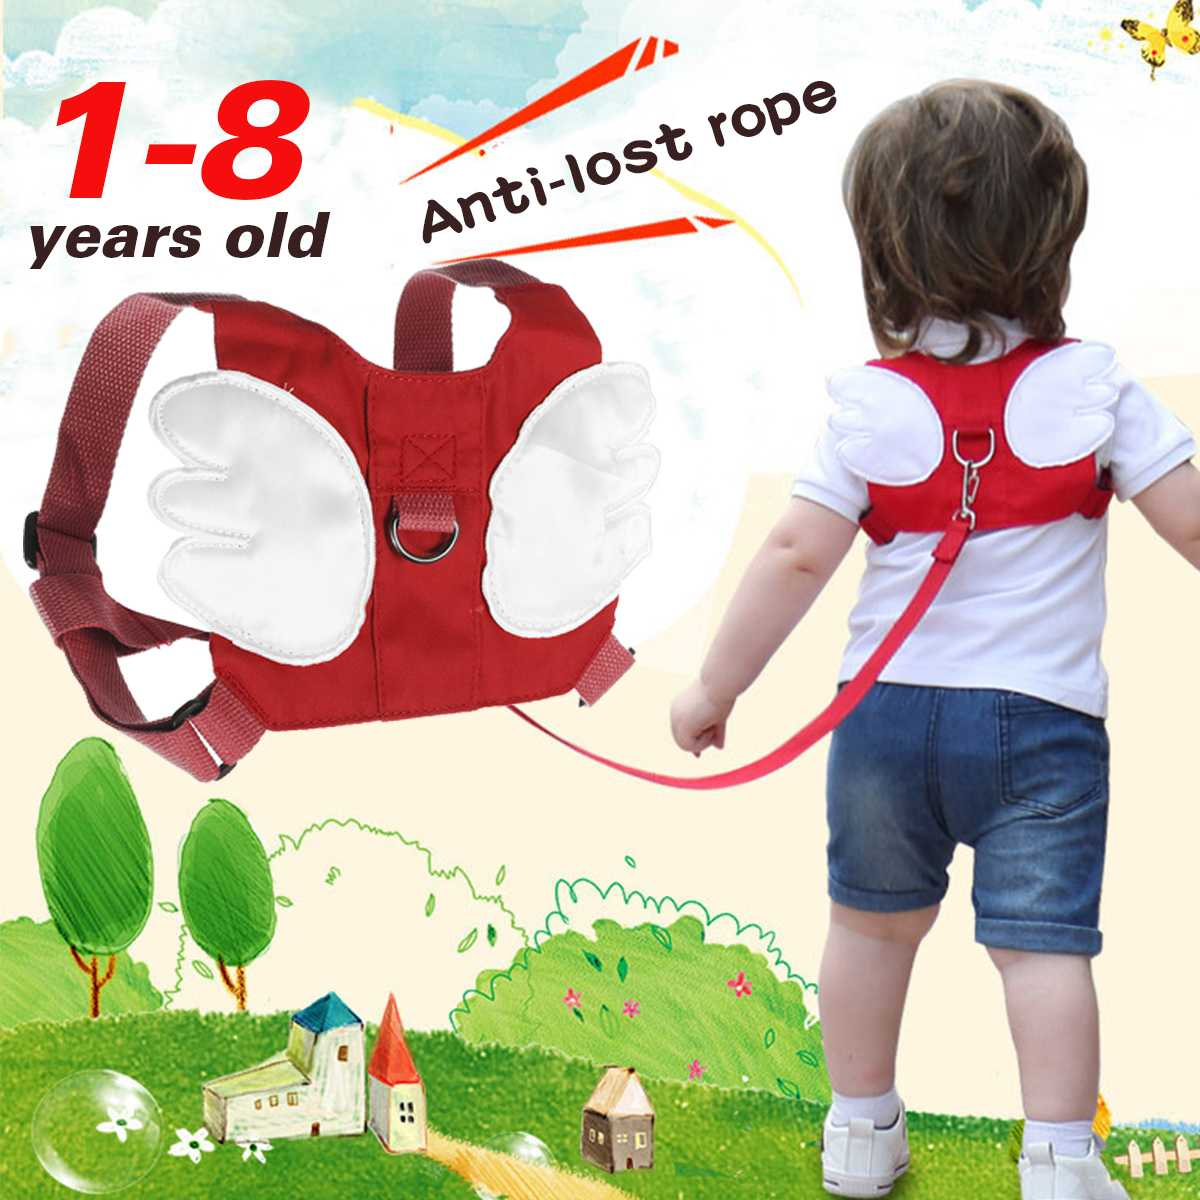 Anti-Lost Band Baby Kid Child Safety Harness Anti Lost Strap Wrist Leash Walking Safety Children Adjustable Rope Blue/Green/Red